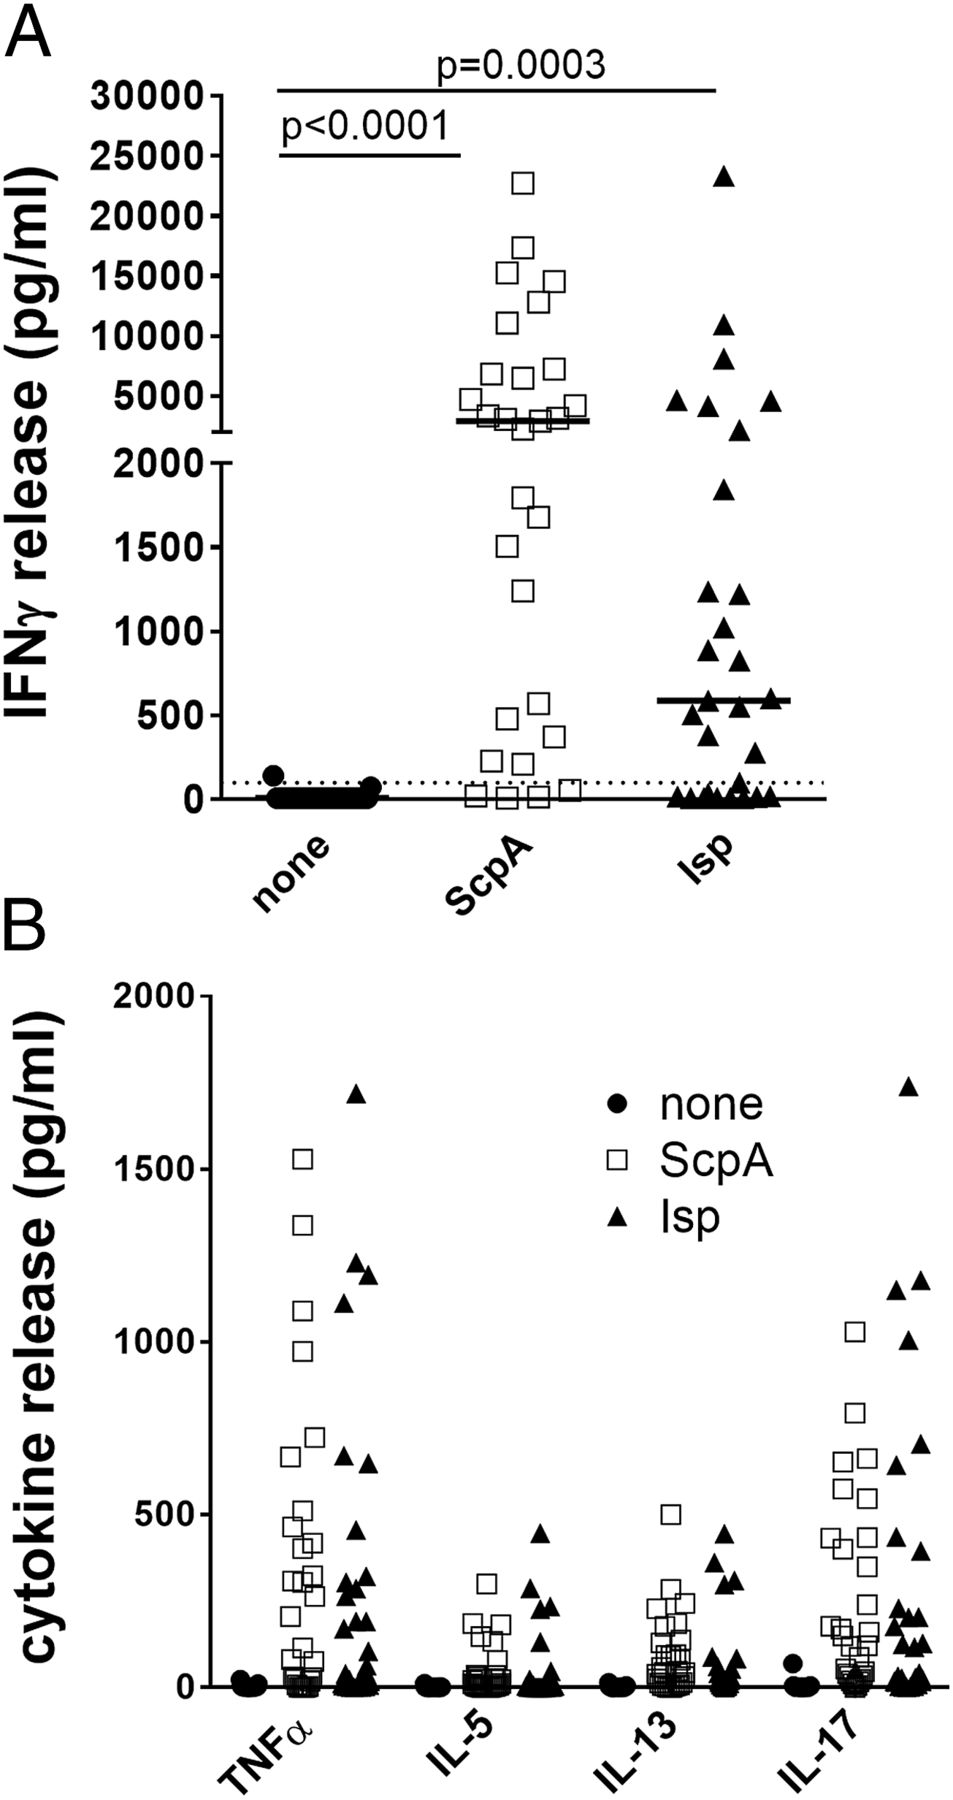 Adaptive Immunity against Streptococcus pyogenes in Adults